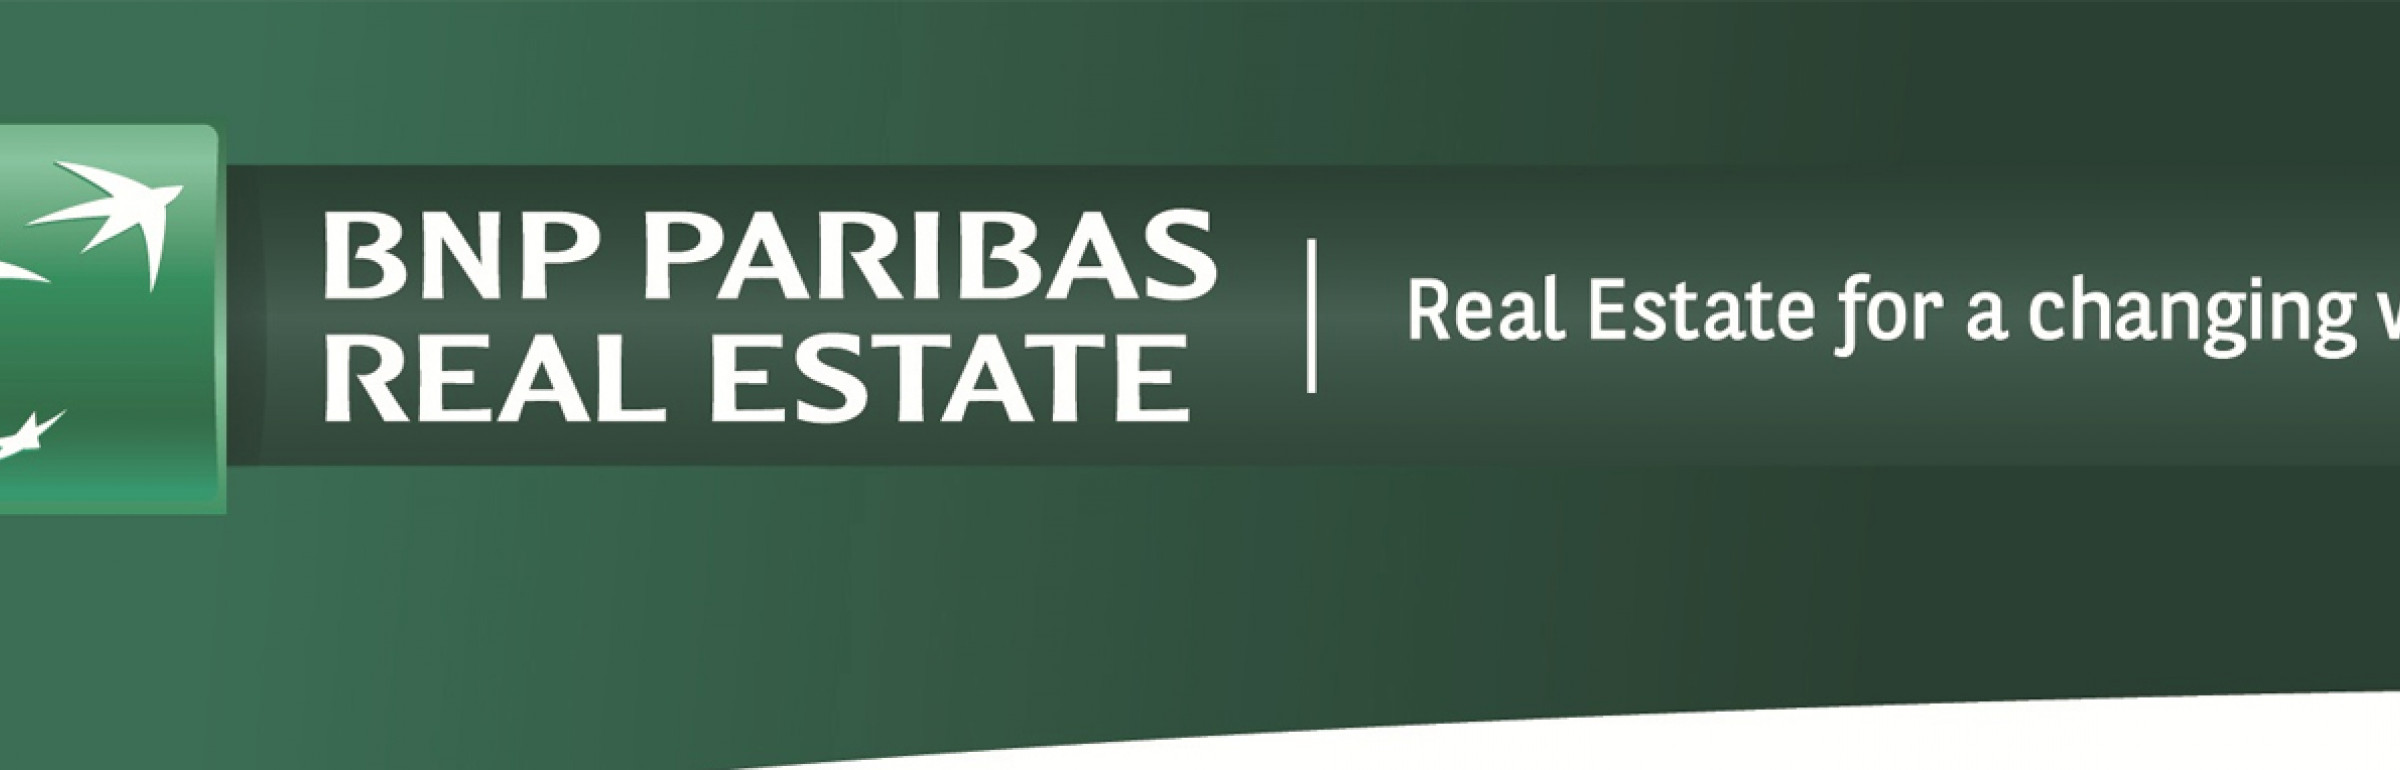 Banner BNP Paribas Real Estate